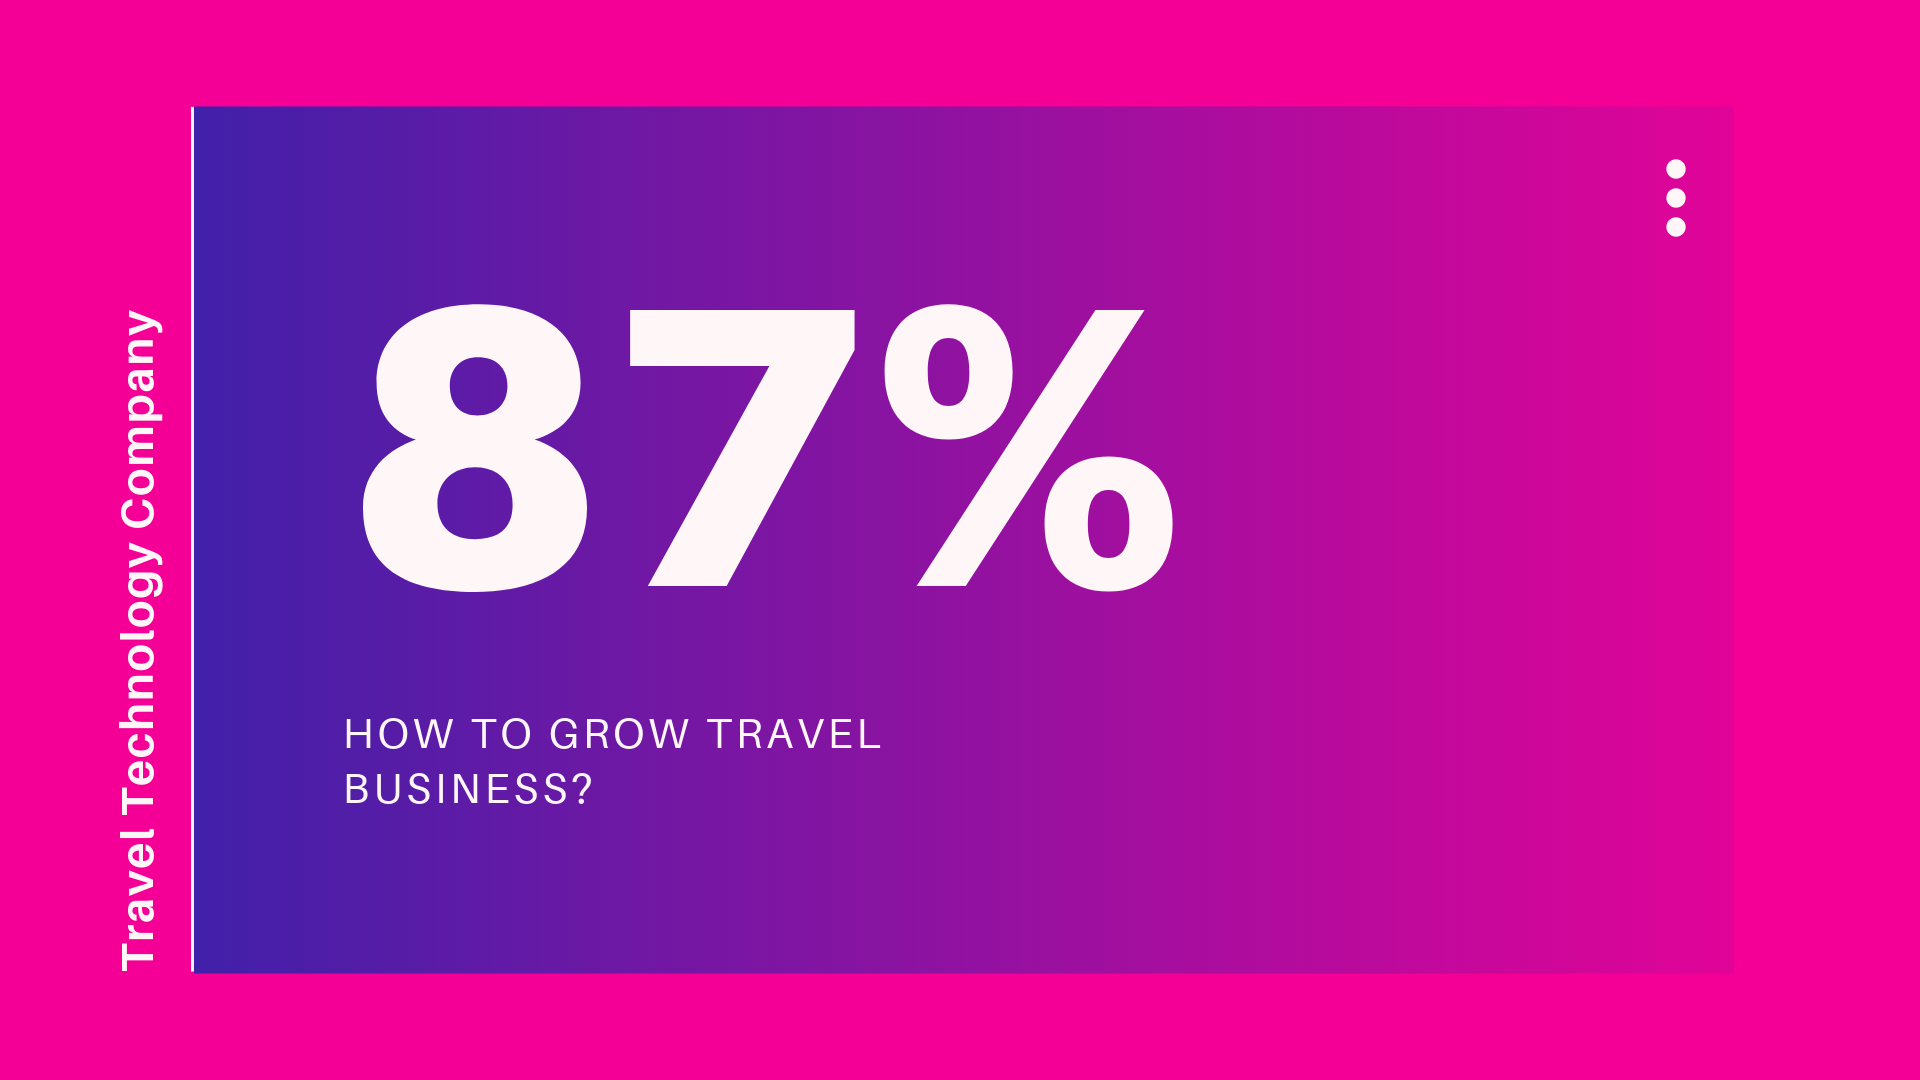 How to Grow Travel Business?